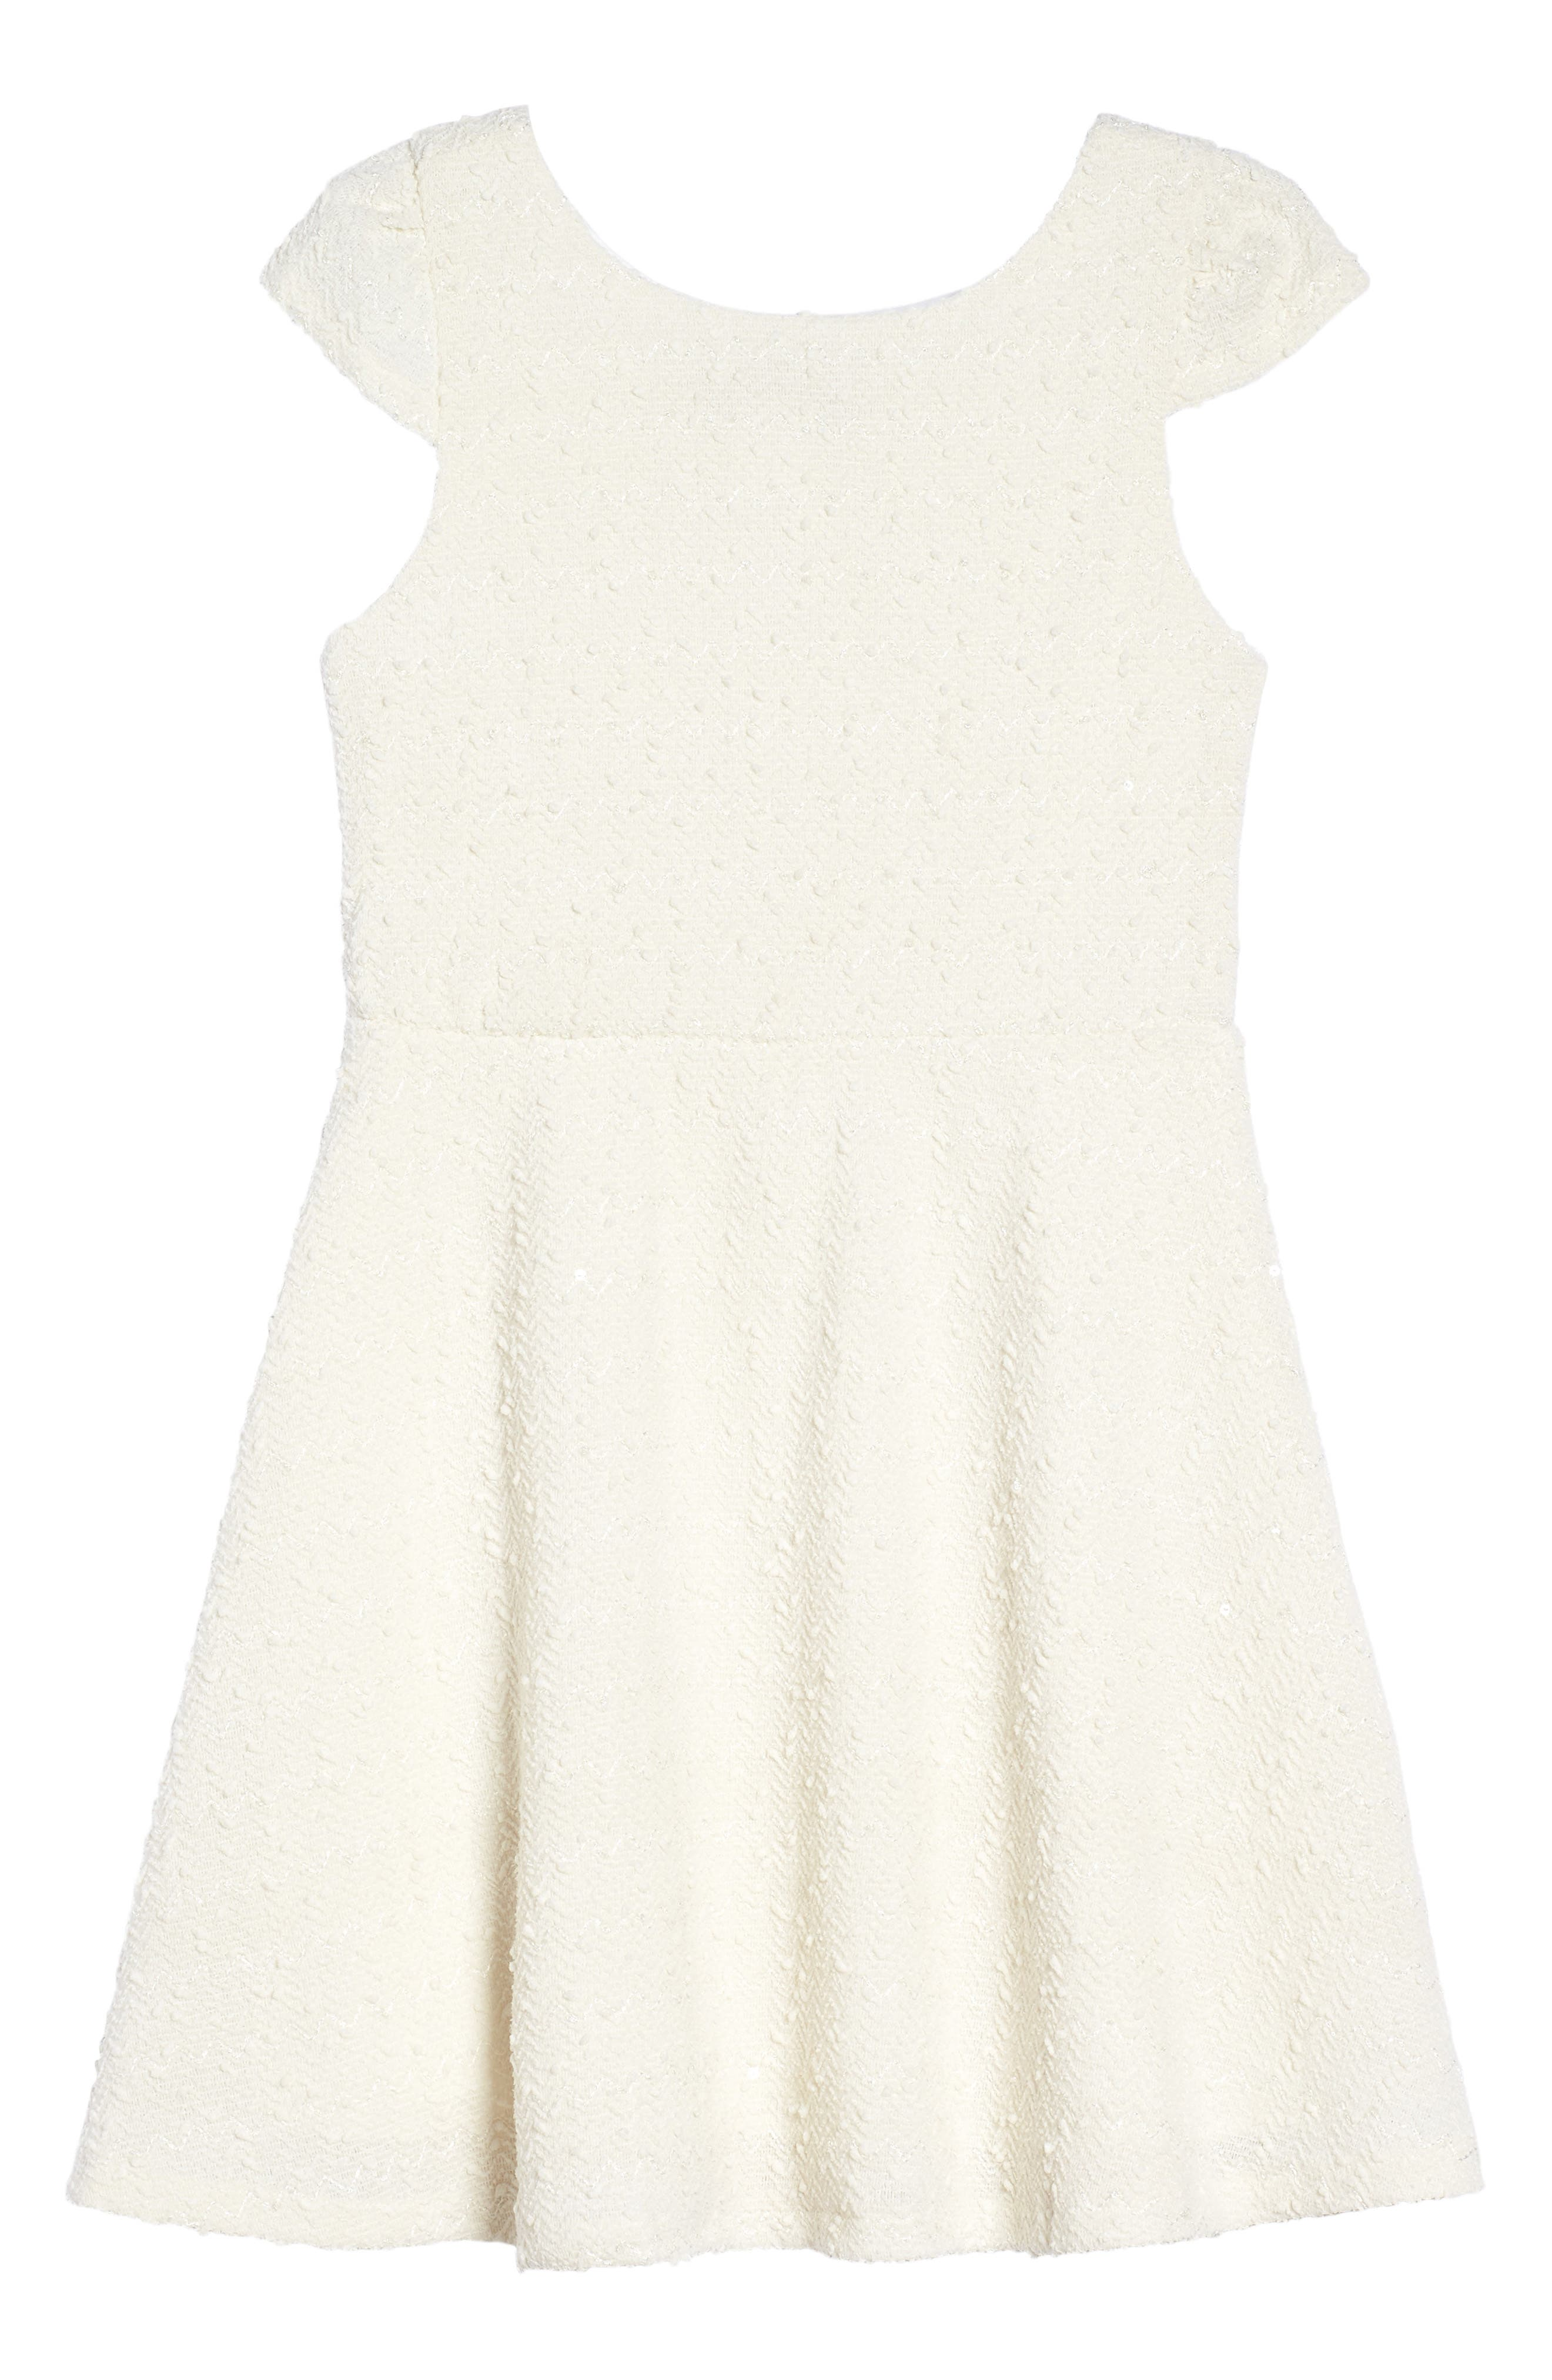 Dorissa Carly Cap Sleeve Dress (Big Girls)